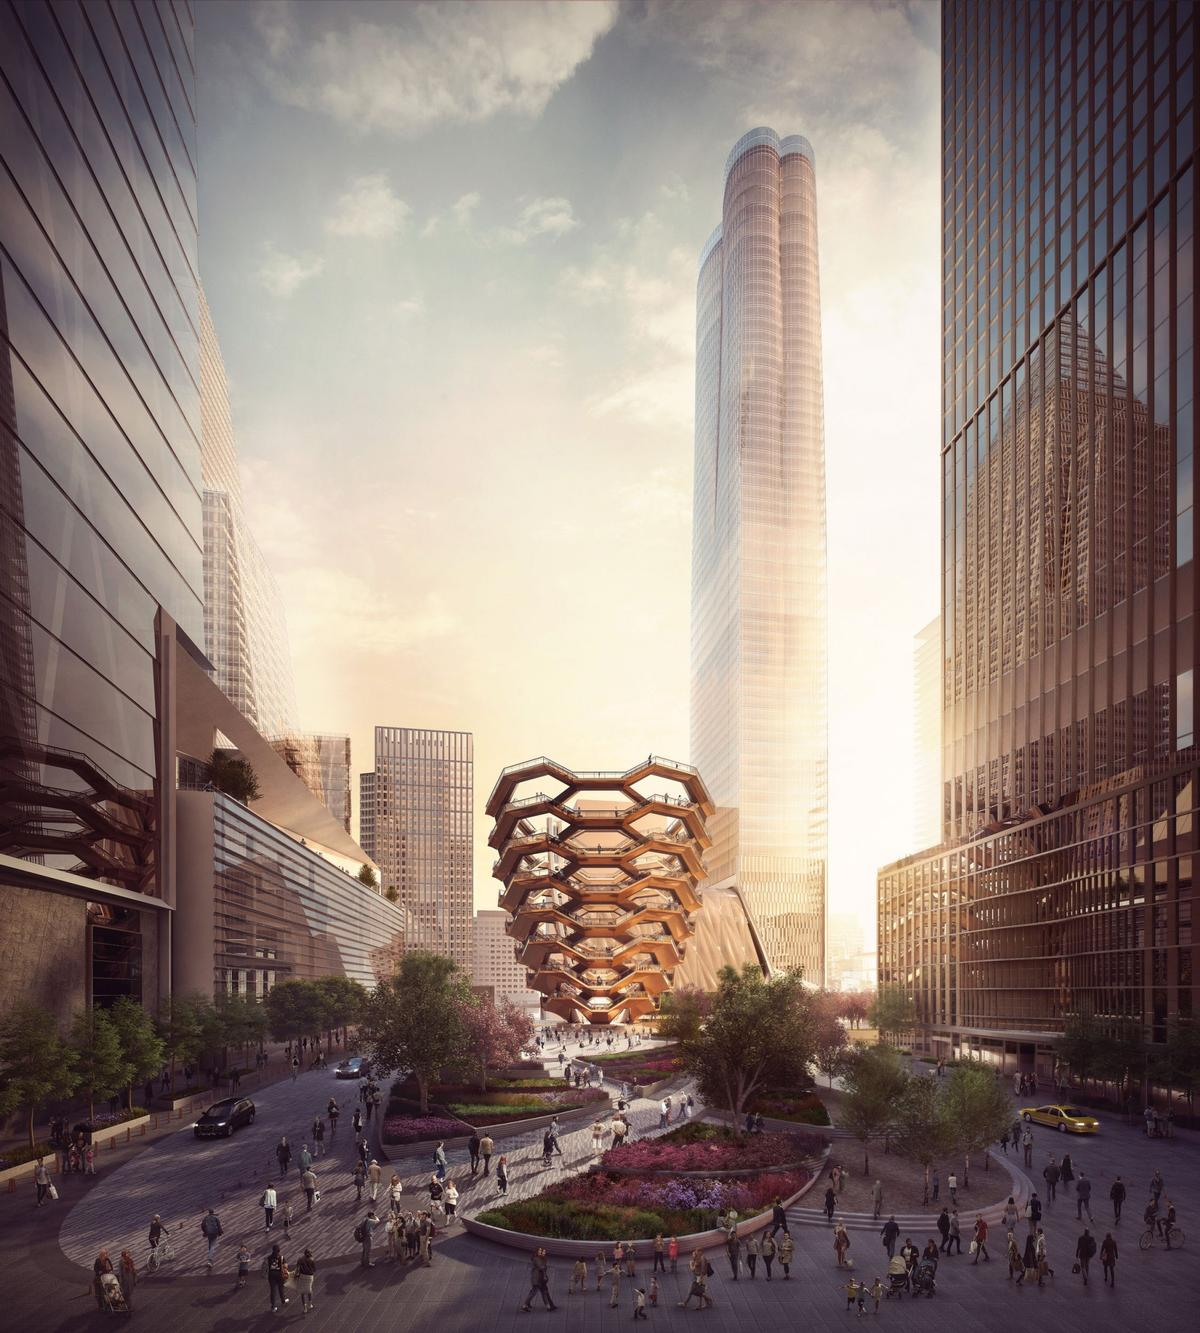 It will be the centrepiece of the new Hudson Yards development / Forbes Massie